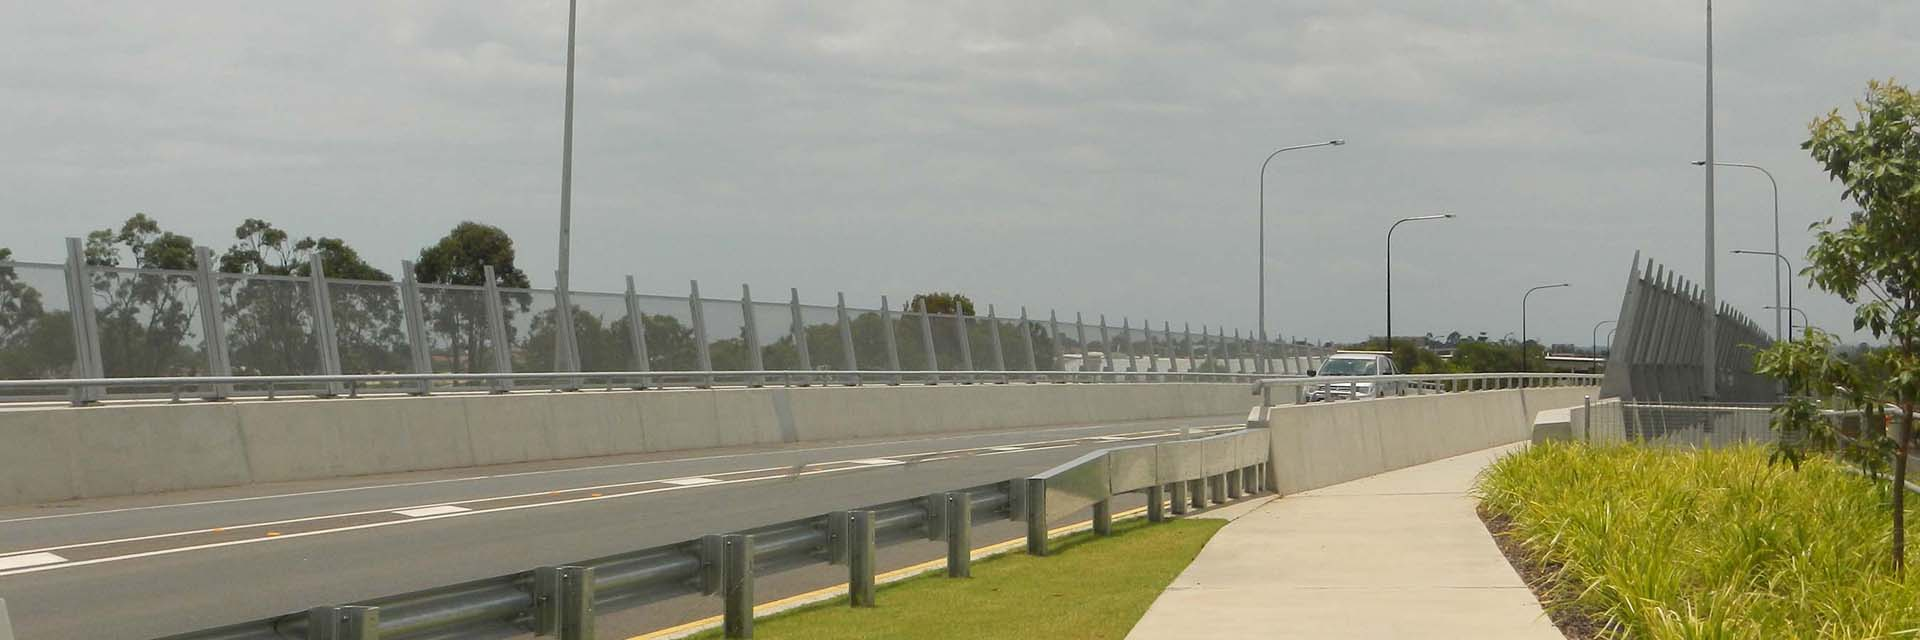 Steel Anti-Throw Screens, Bike Safety Rail, Lampstand Brackets – Plantation Rd Bridge, Dakabin.